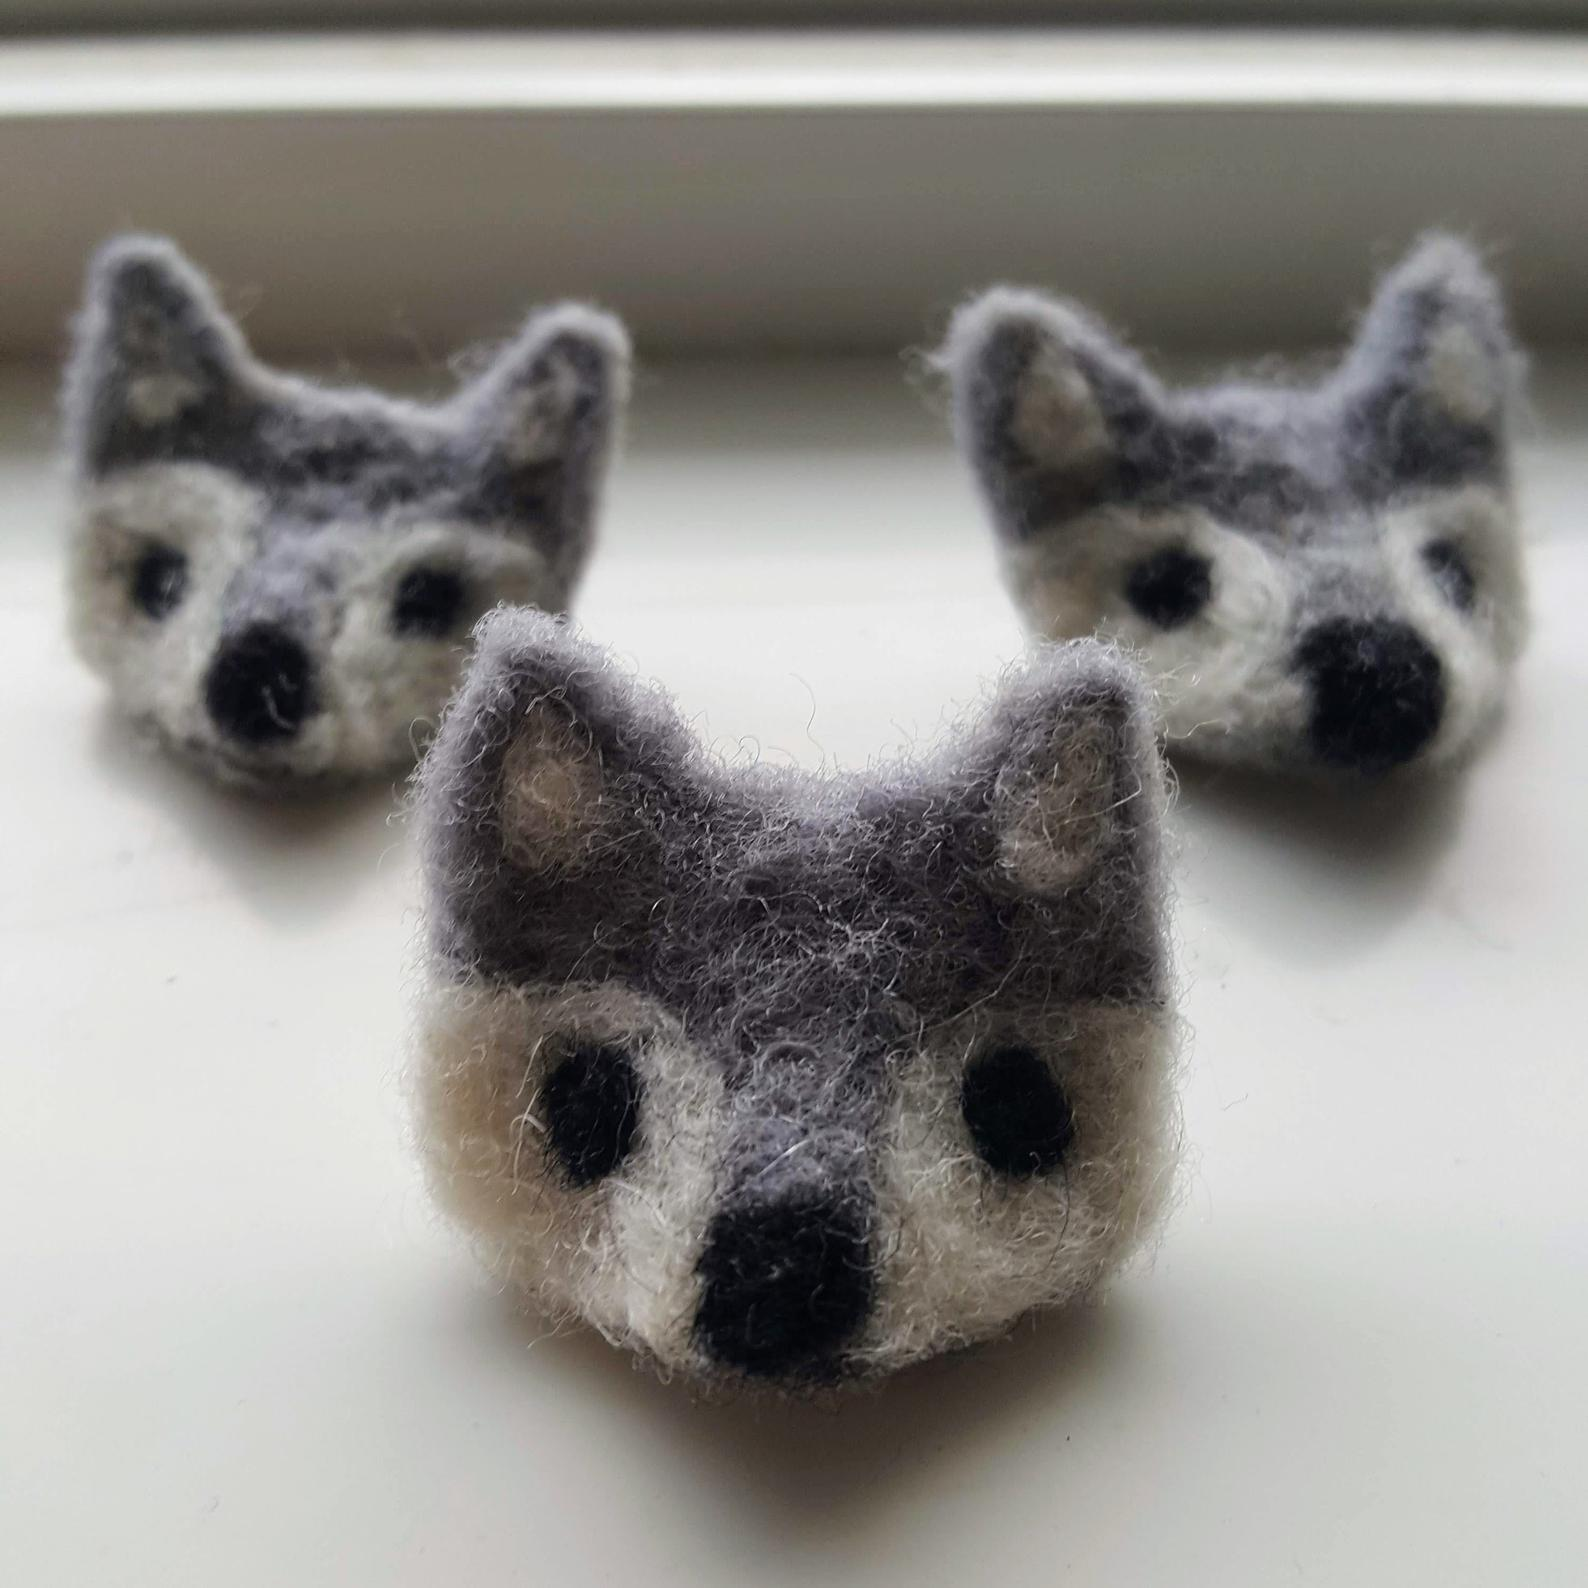 Three small grey wolf heads that are made out of felt. They have grey fur, which is white around the black eyes and nose. They are sitting on a windowsill.